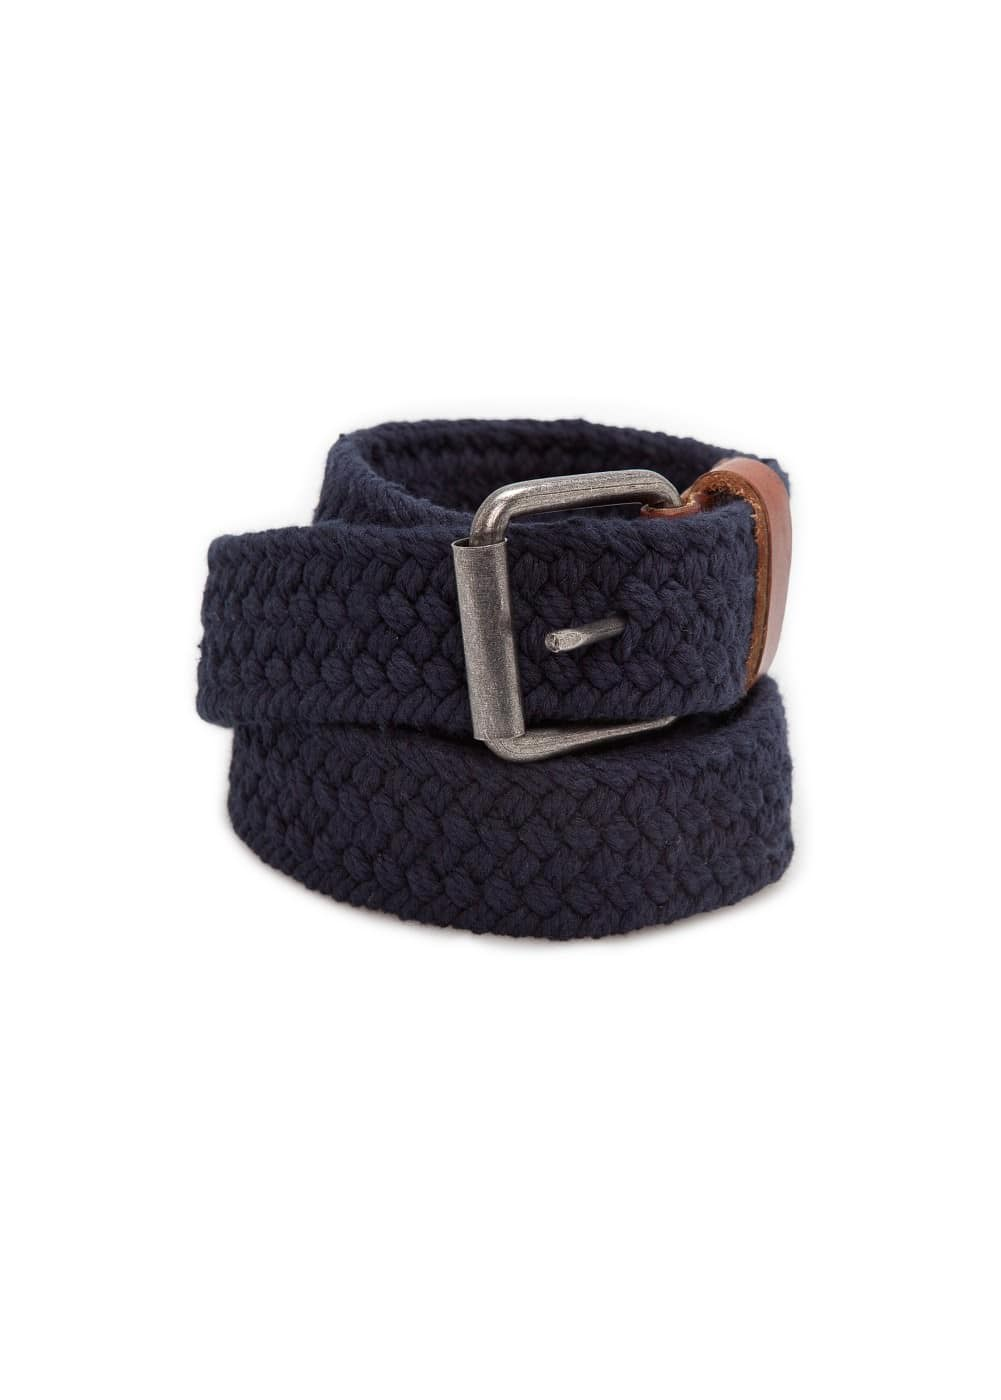 Braided cotton belt